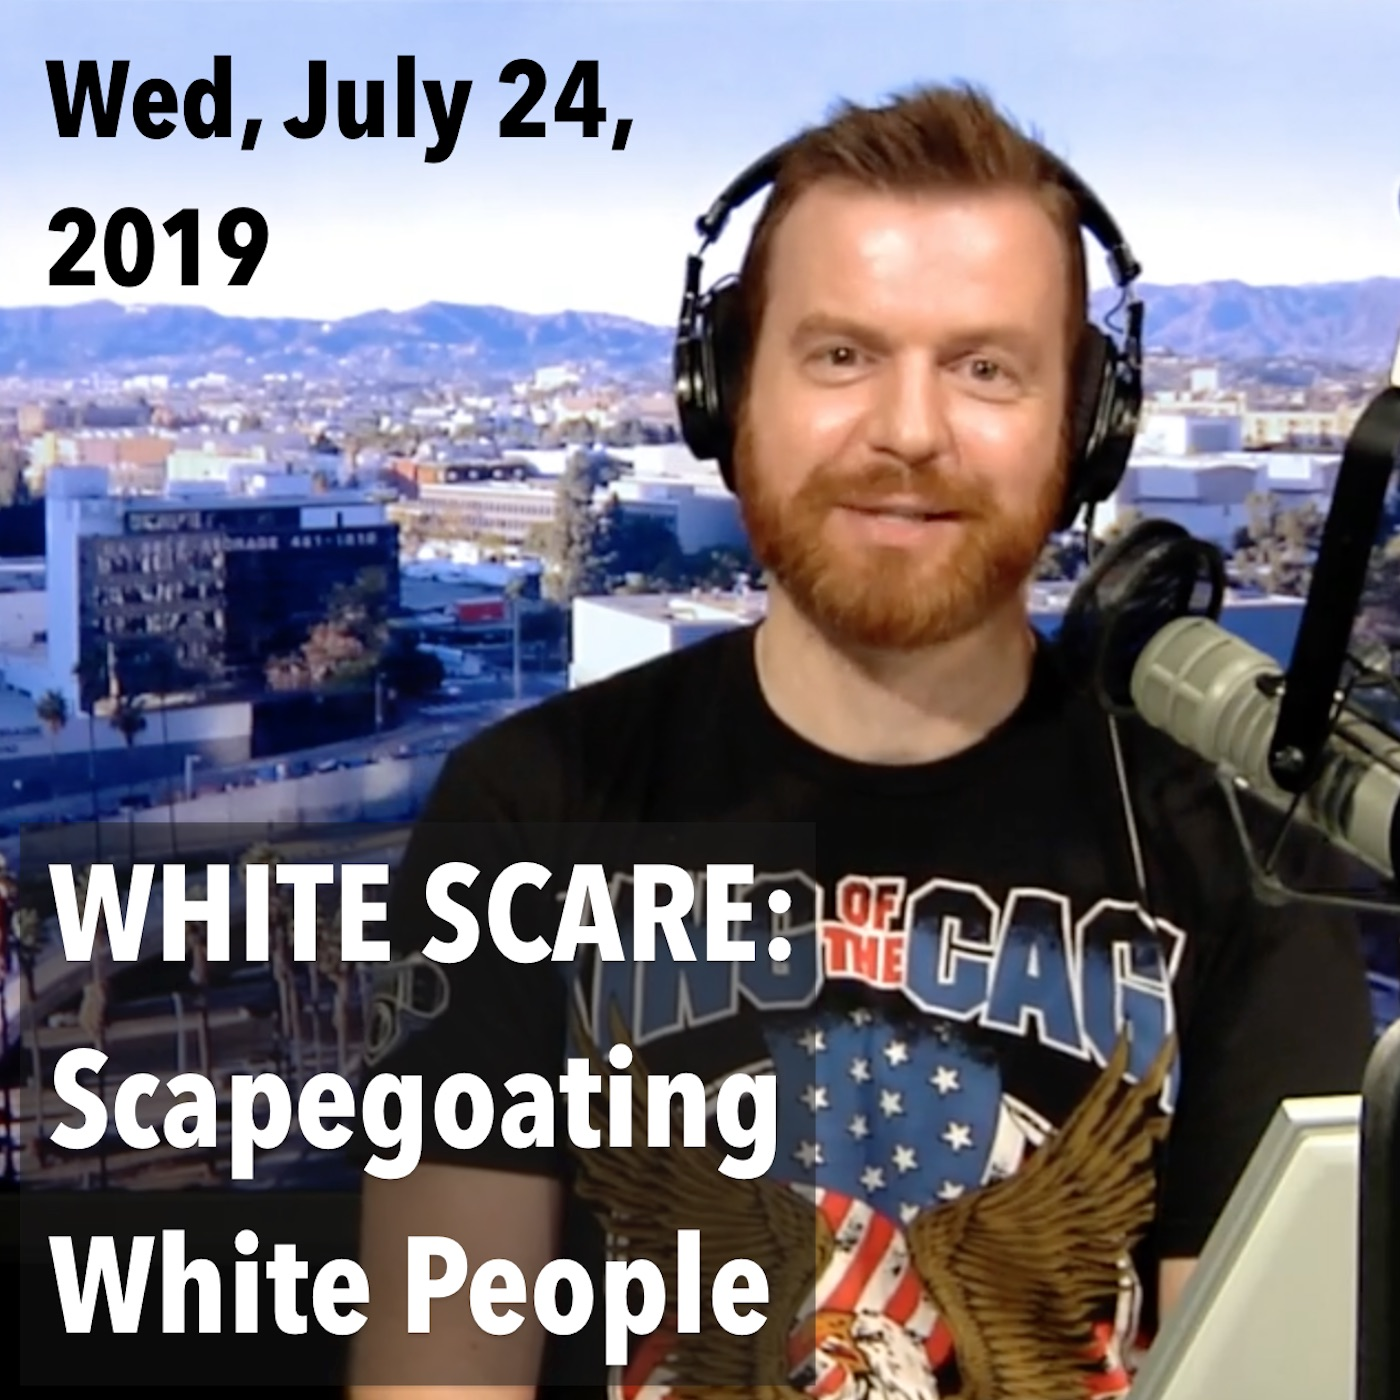 Square thumbnail from today's show, Wednesday, July 24, 2019: WHITE SCARE: Scapegoating White People